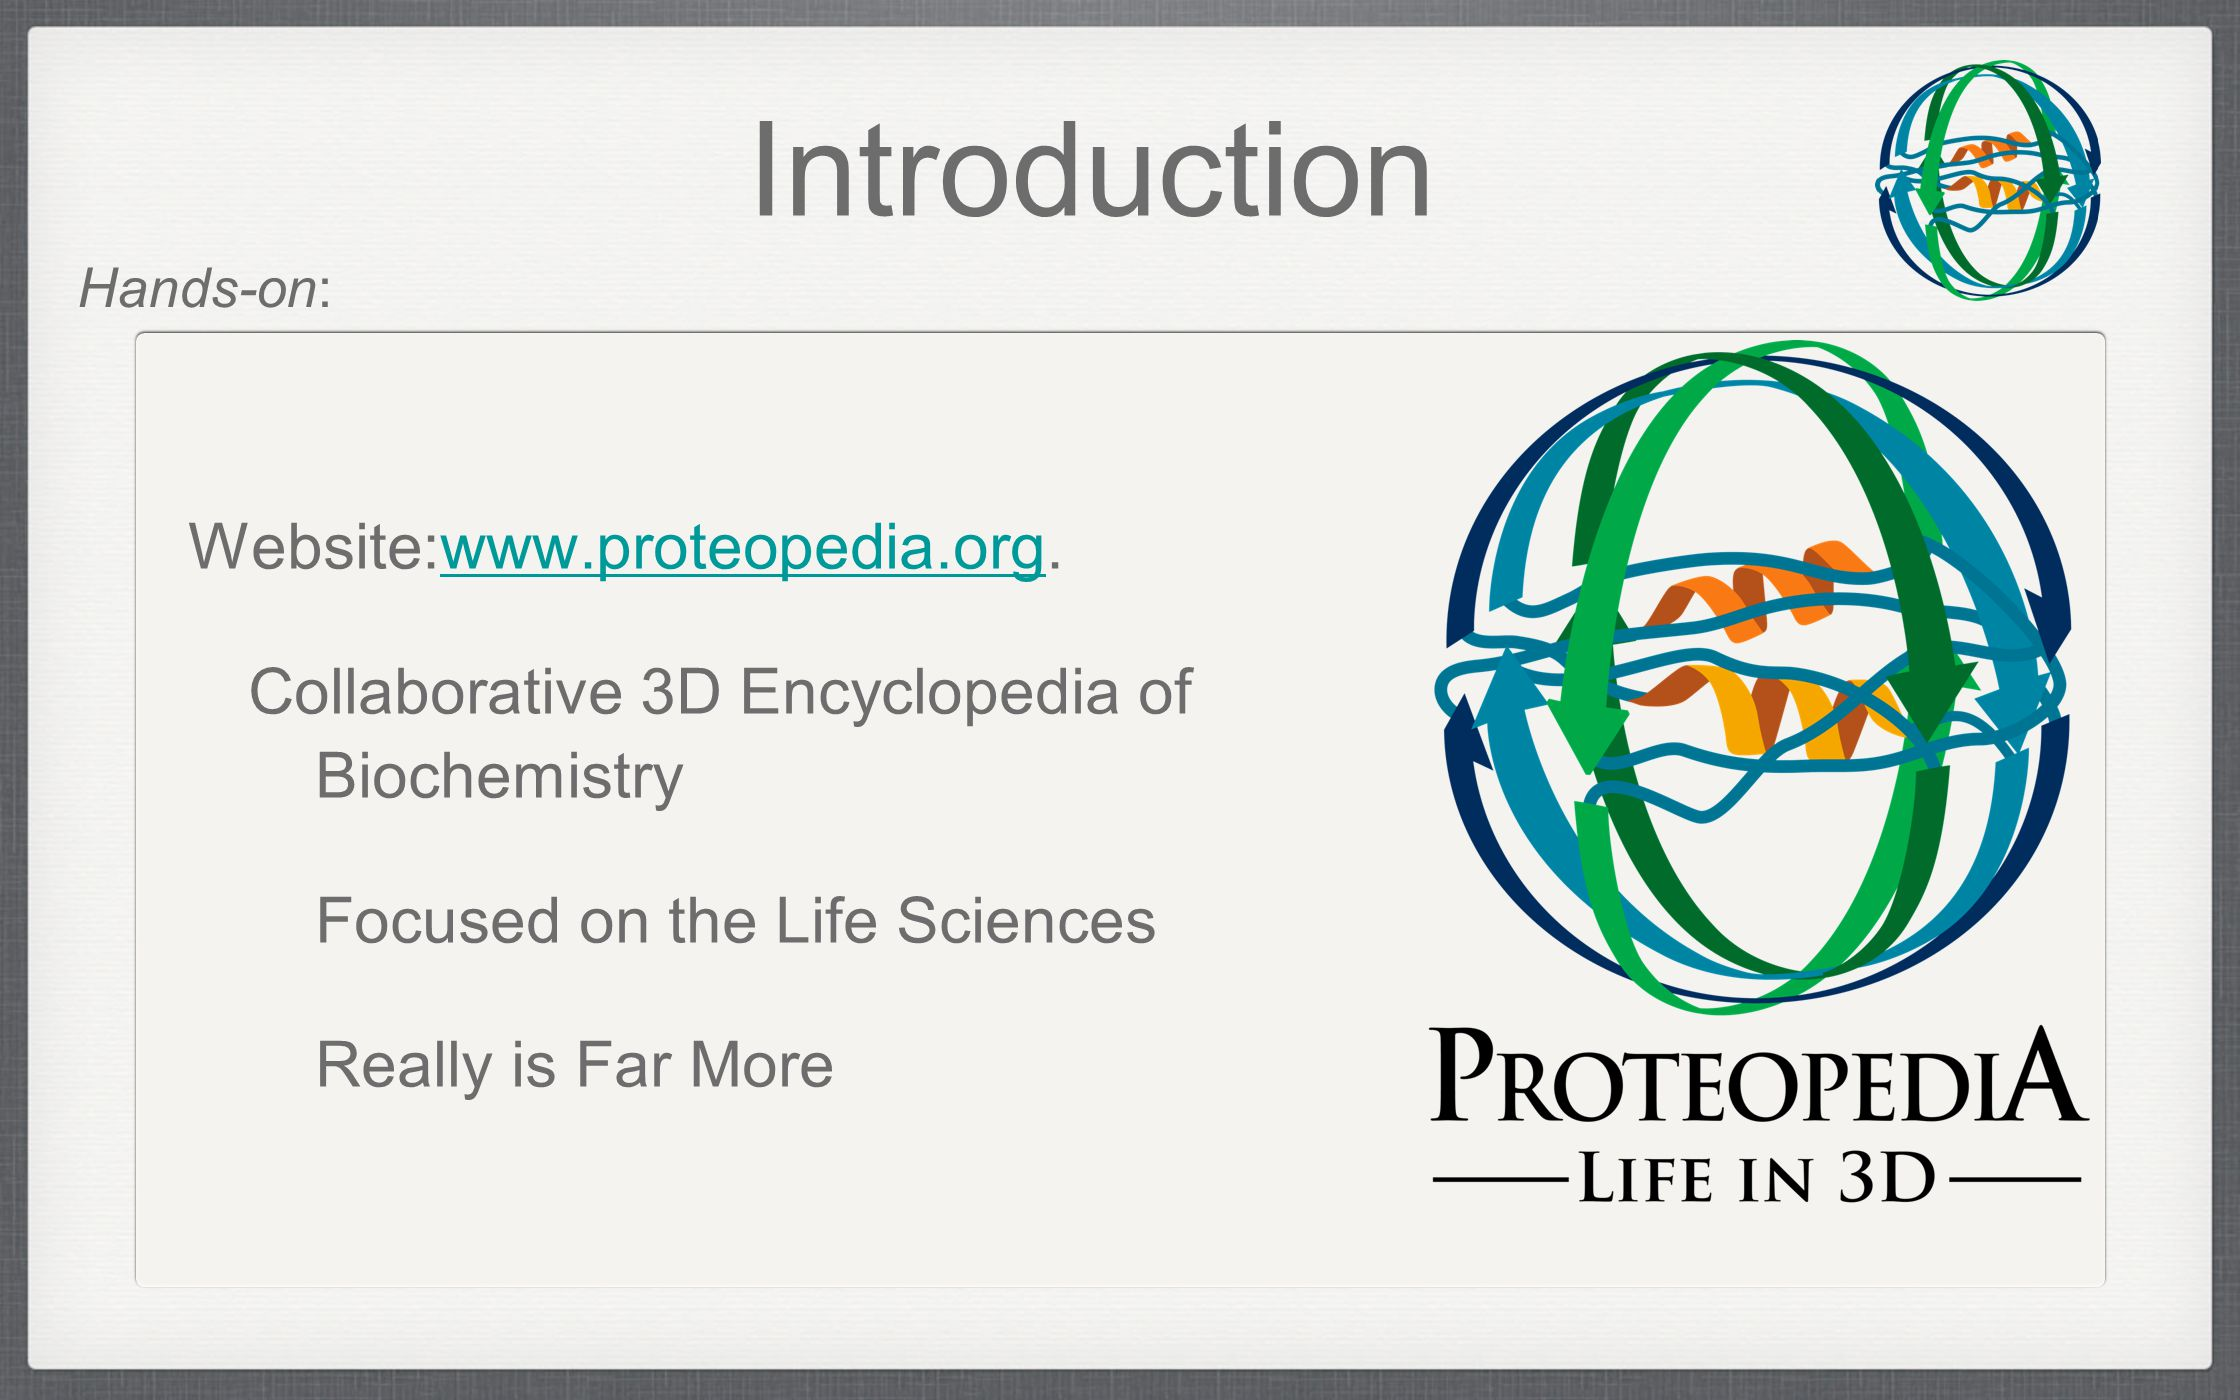 Website:www.proteopedia.org.www.proteopedia.org Collaborative 3D Encyclopedia of Biochemistry Focused on the Life Sciences Really is Far More Introduc